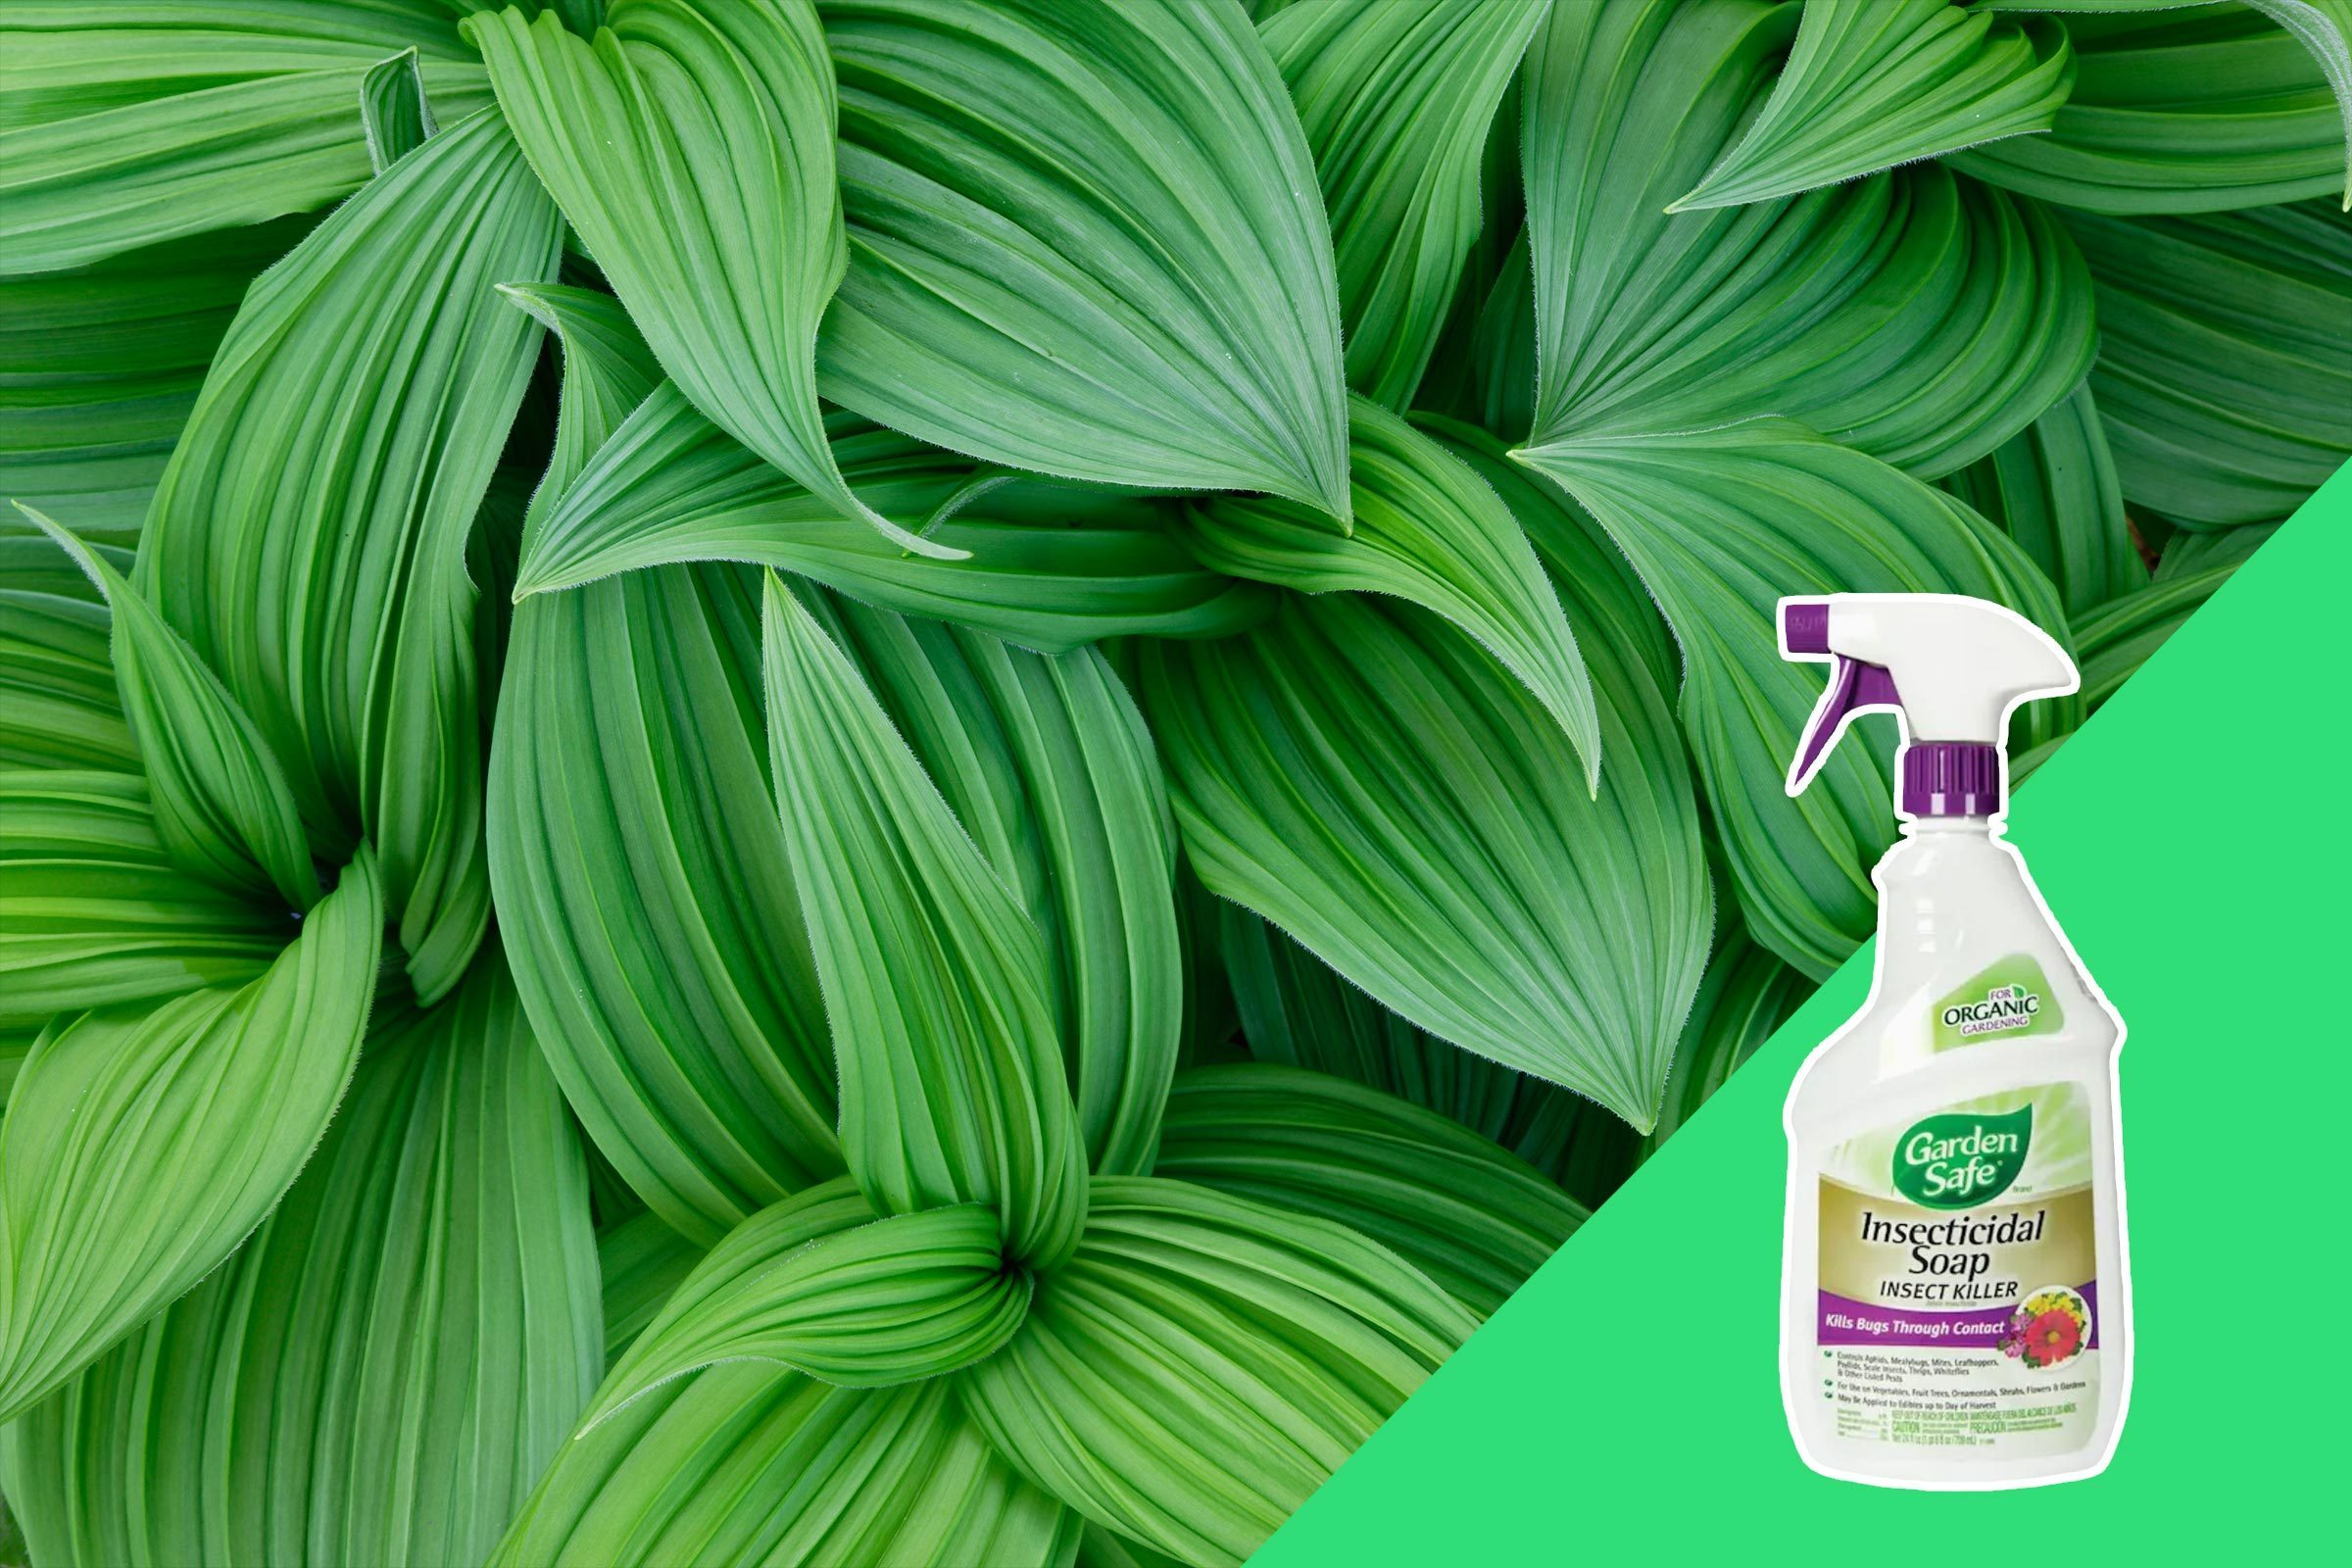 Plants and plant-cleaning supplies